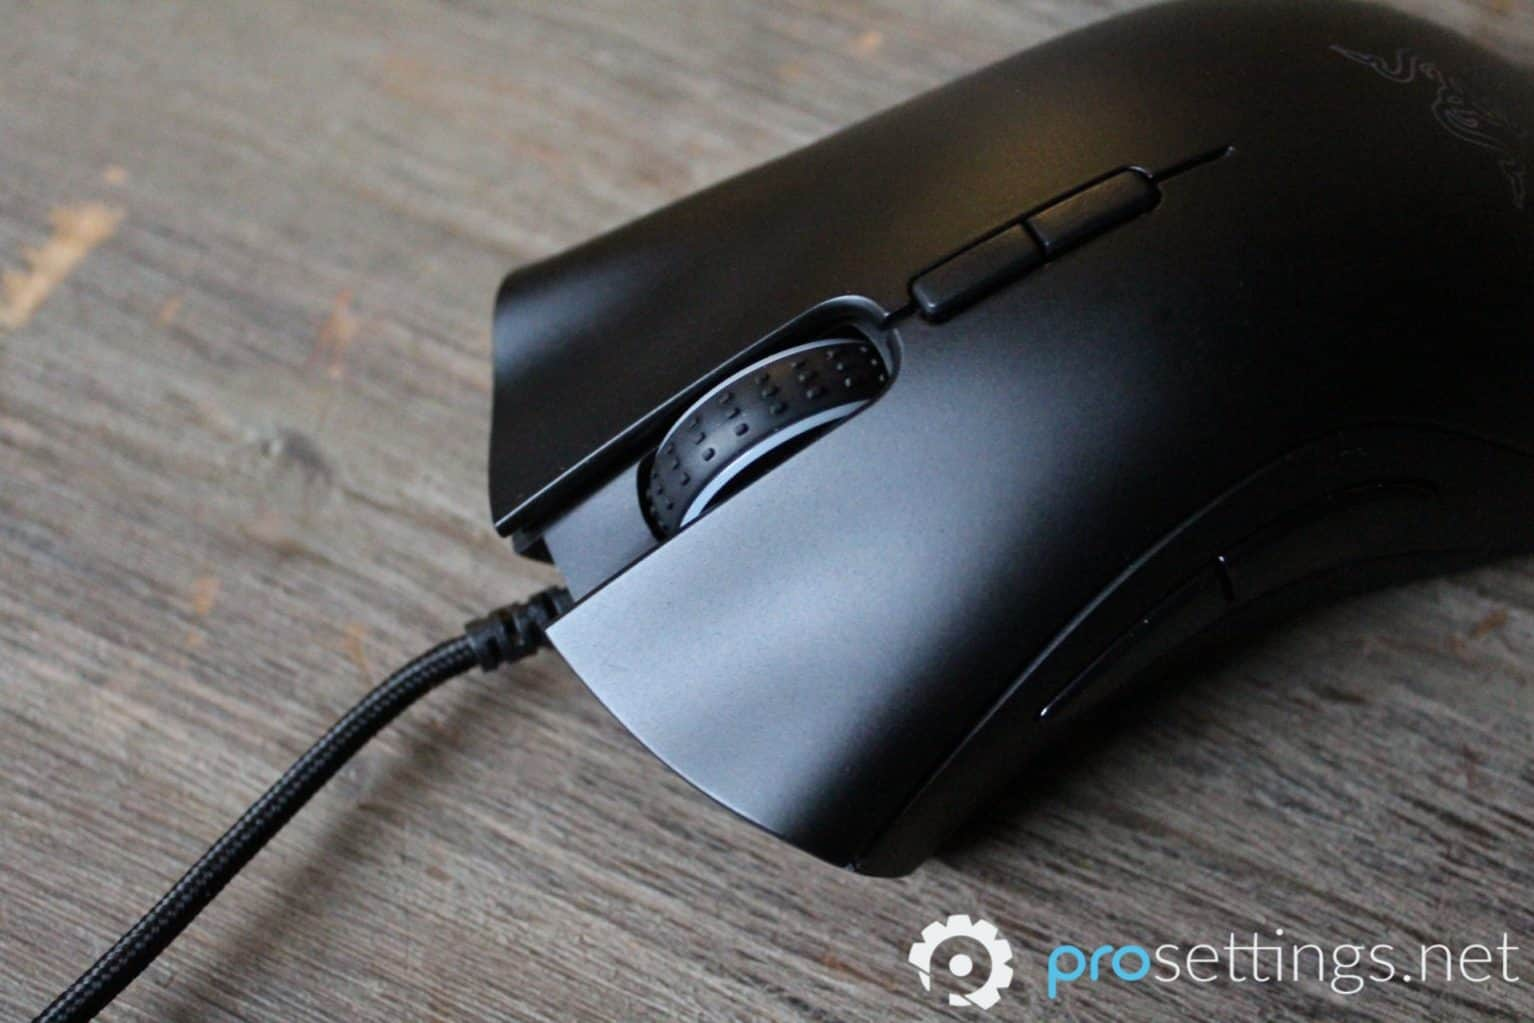 Razer Deathadder Elite Review